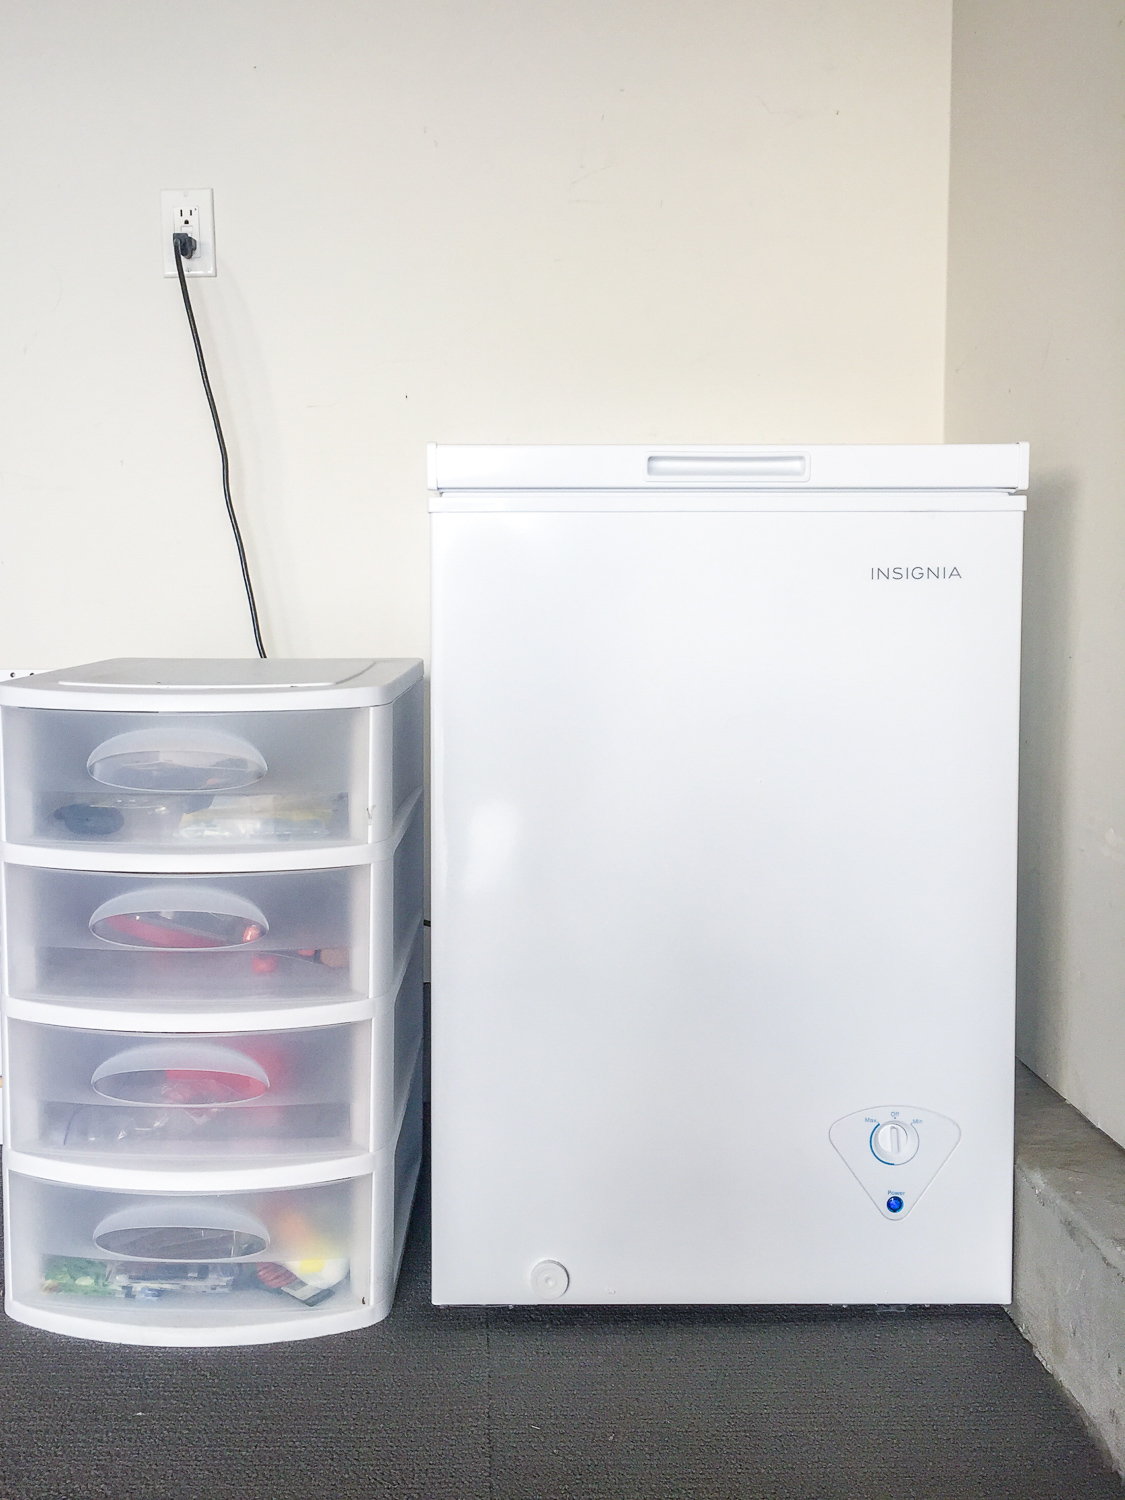 closed Insignia 3.5 Cu. Ft. Chest Freezer in Garage